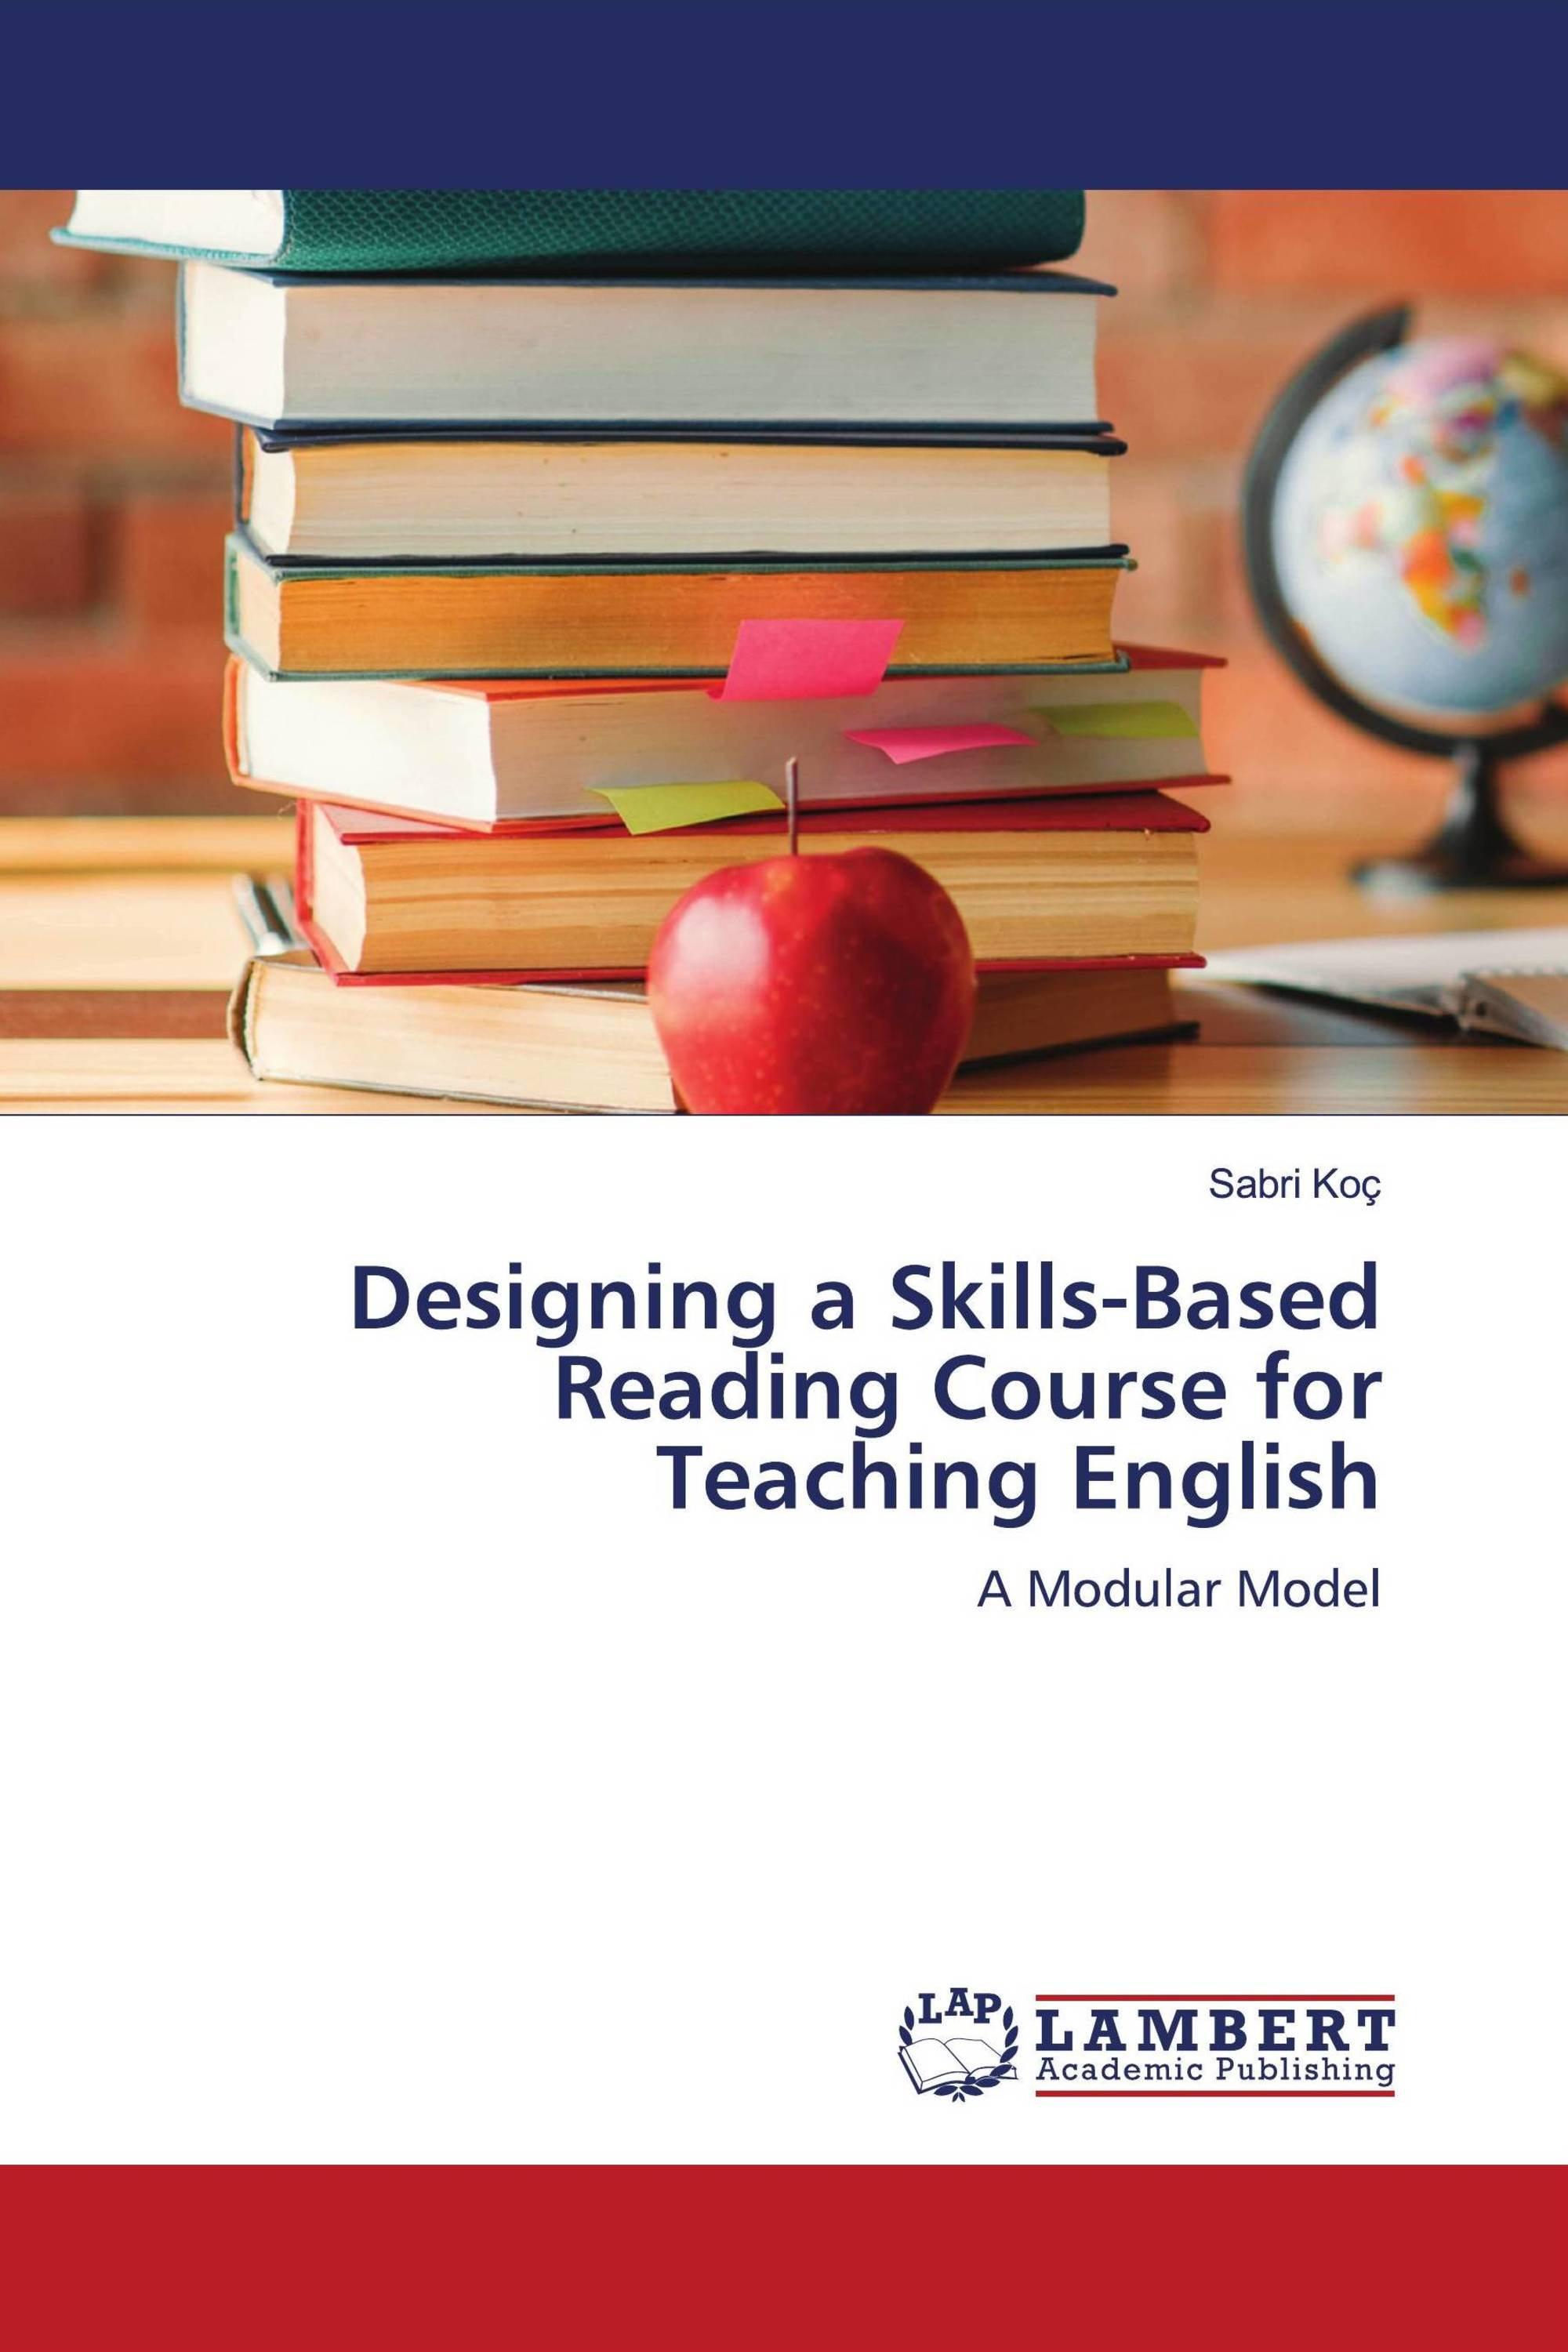 Designing a Skills-Based Reading Course for Teaching English